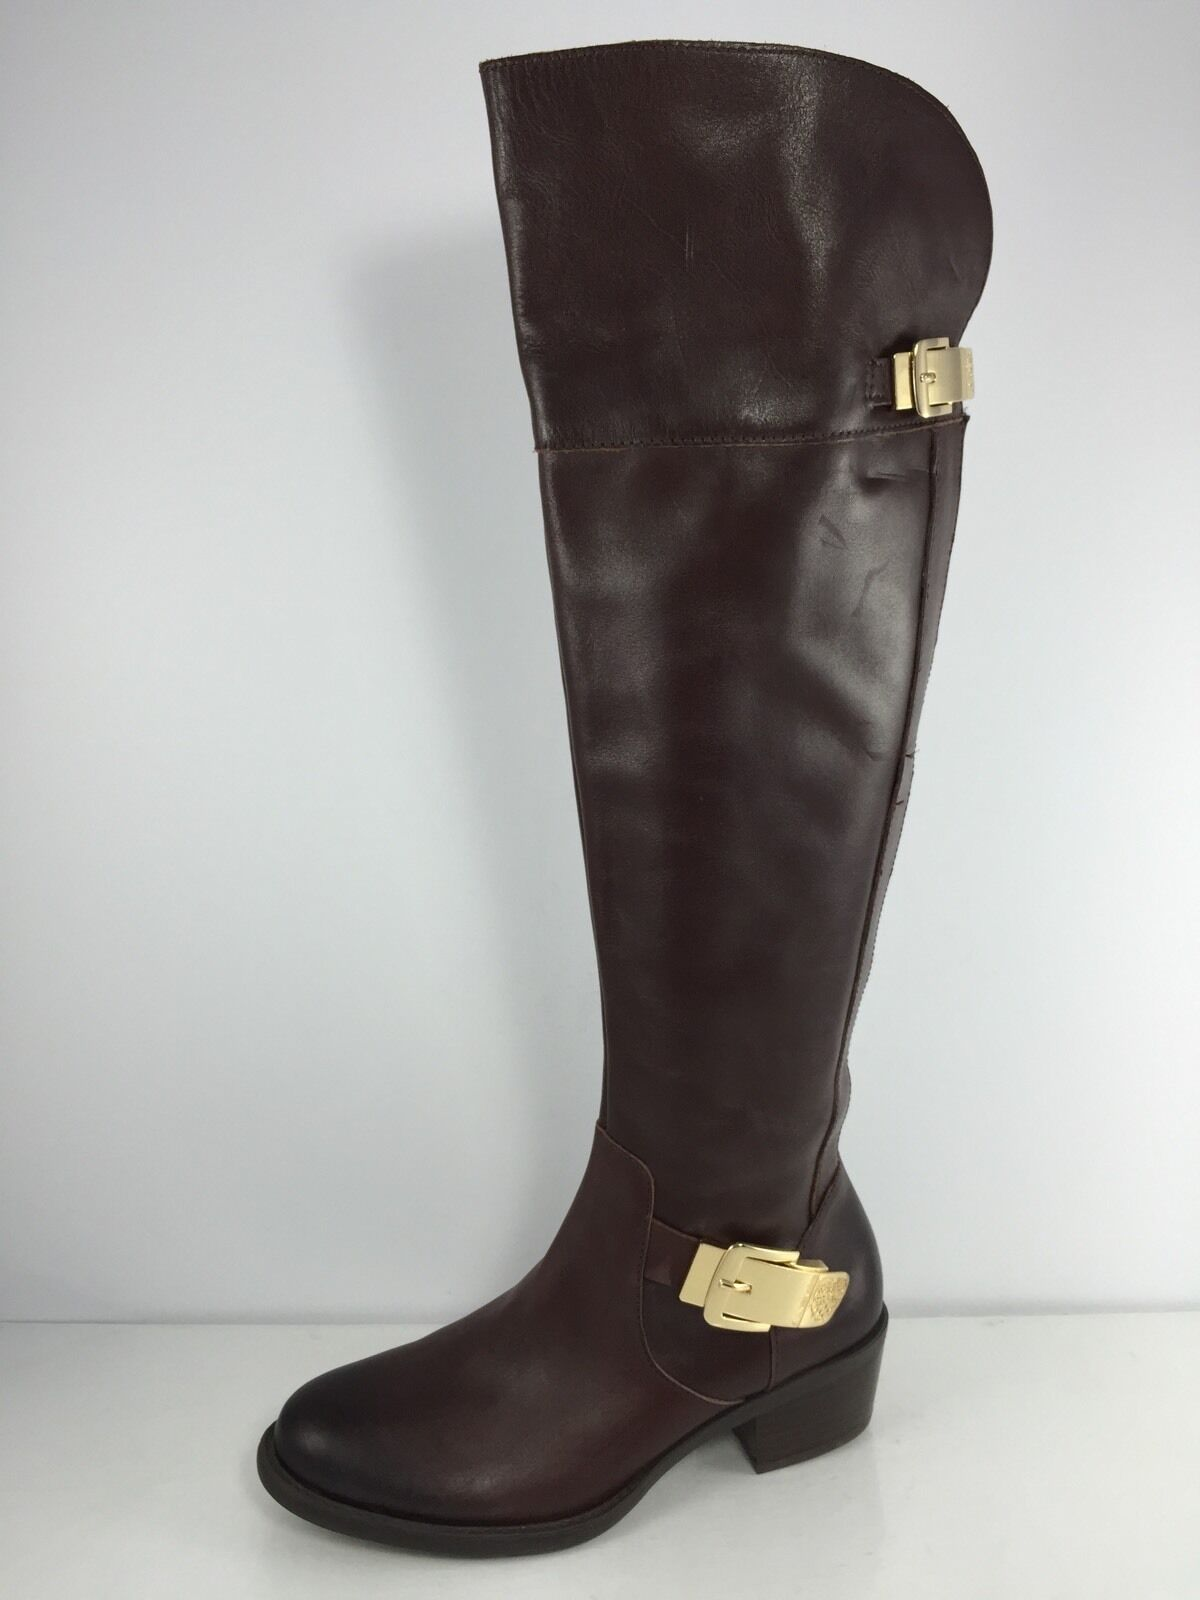 Vince Camuto Womens Dark Brown Leather Knee Boots 7 M